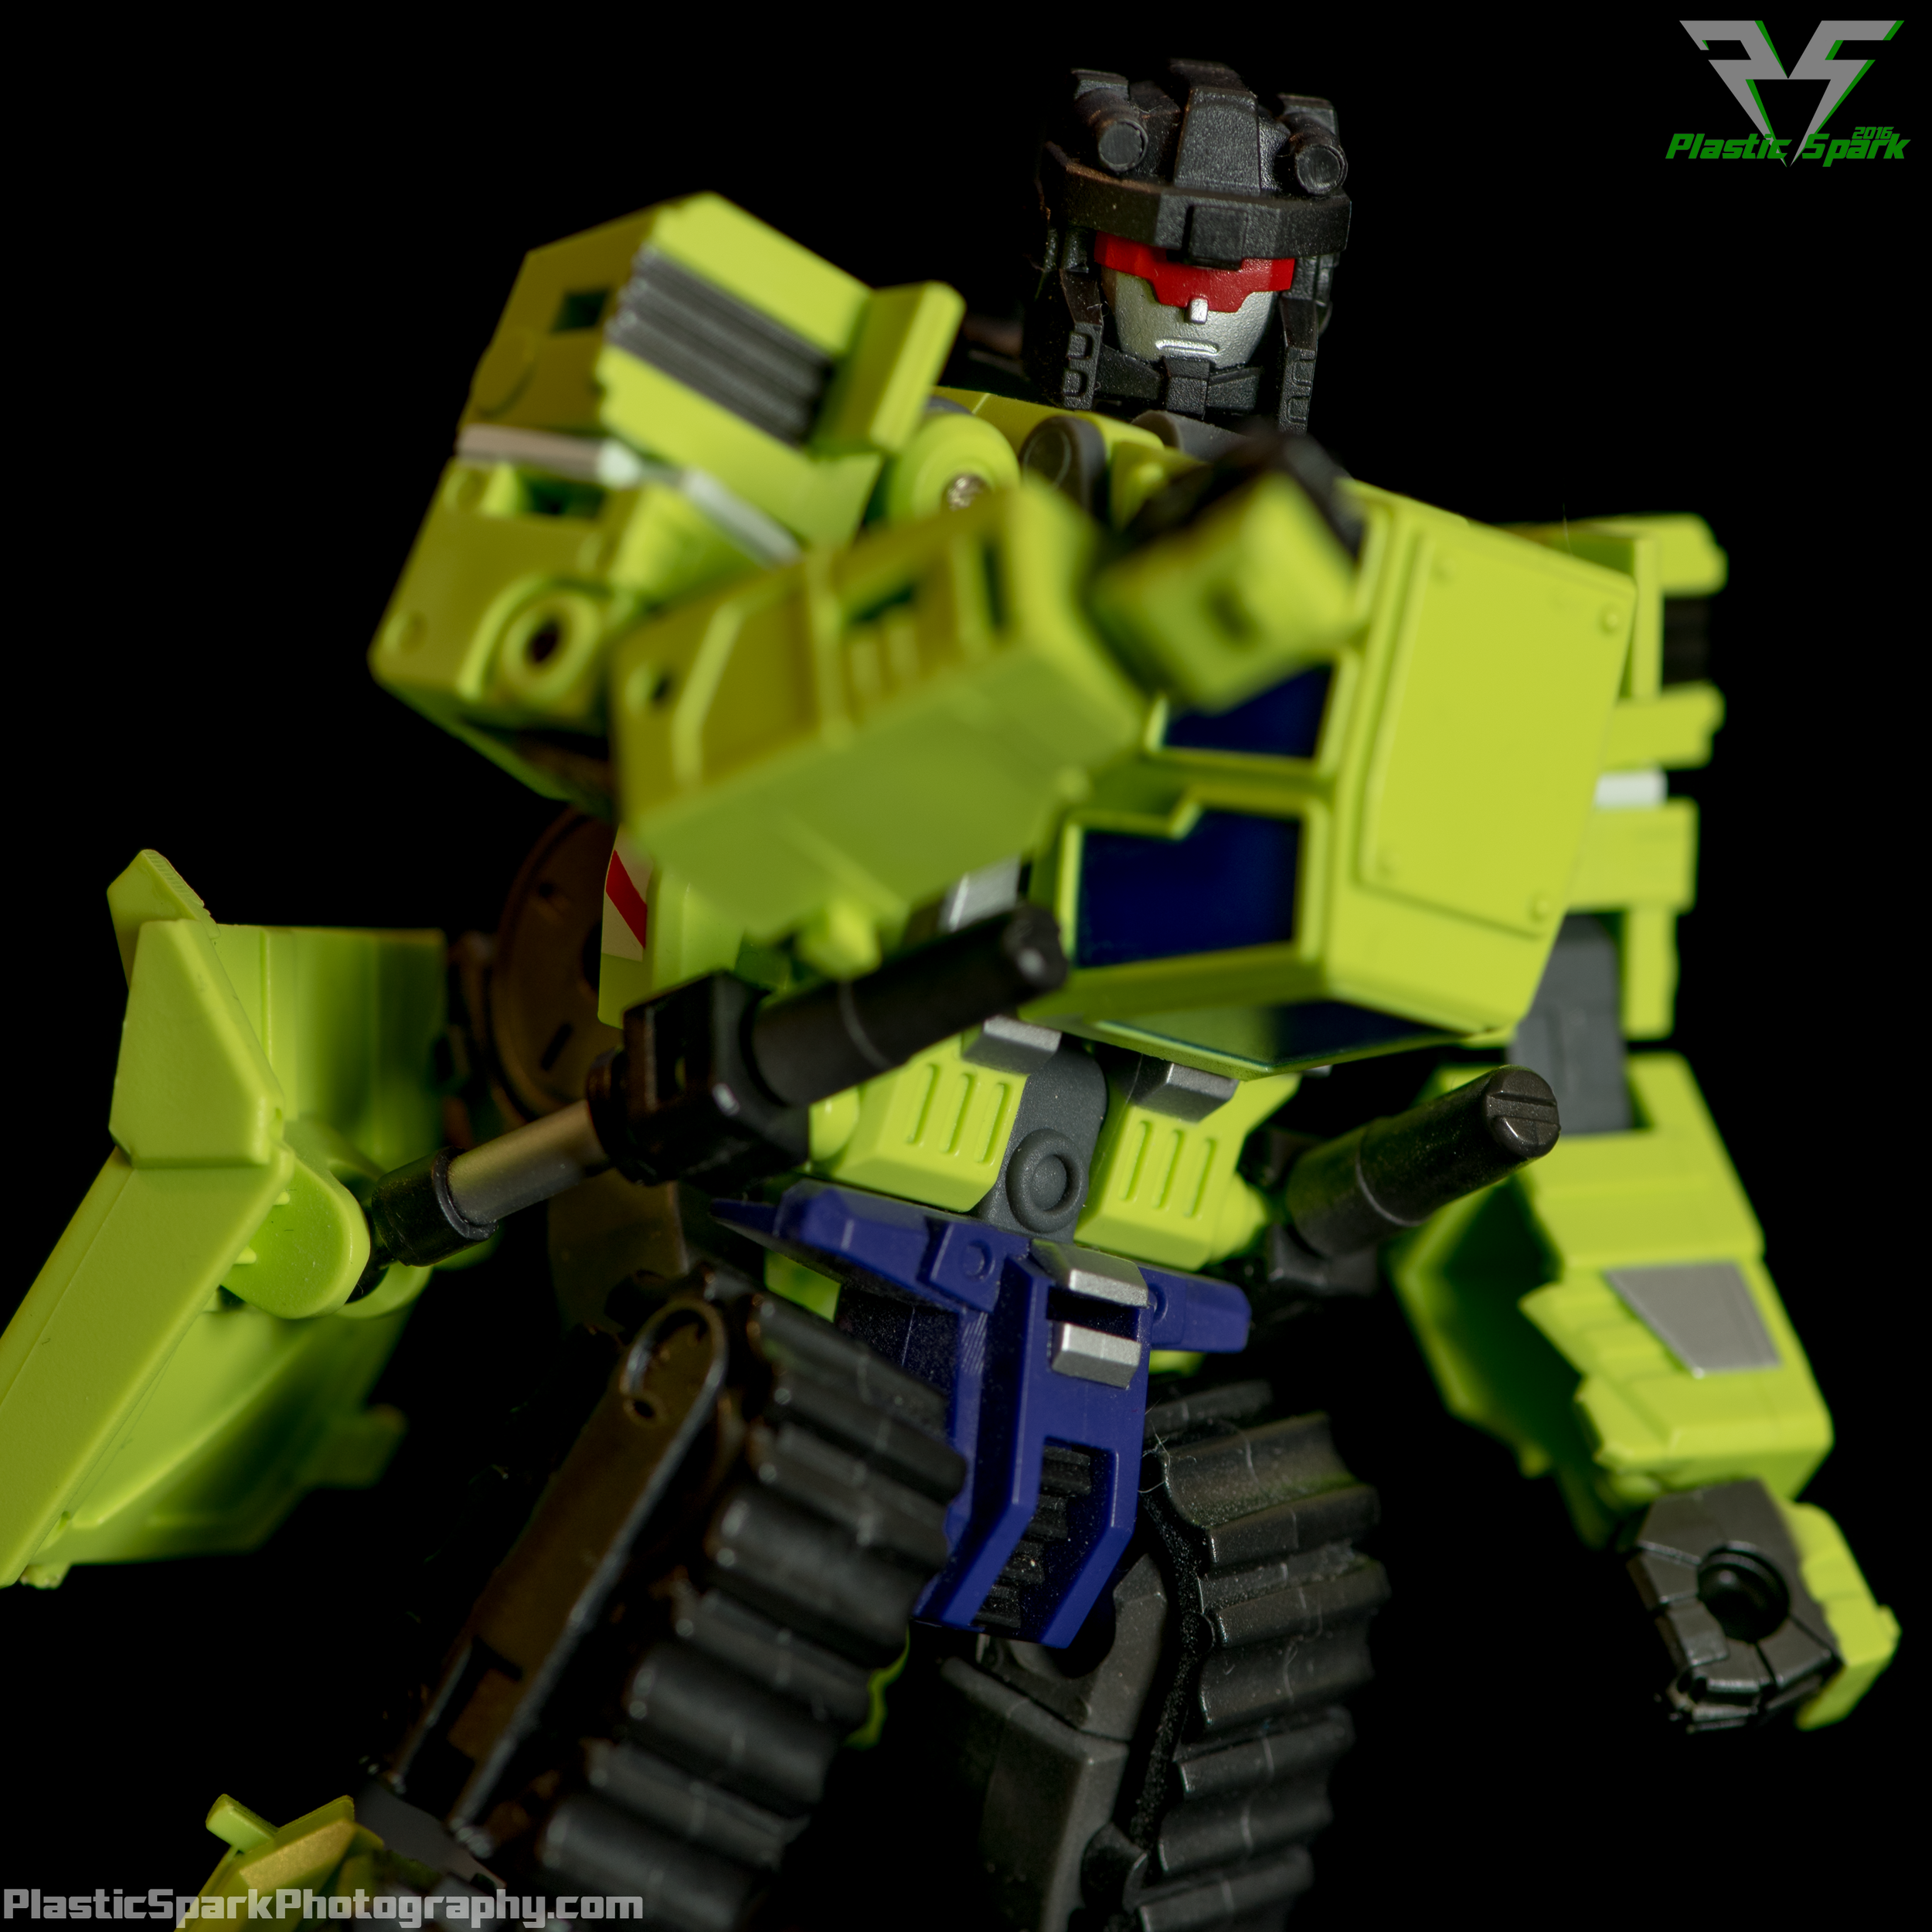 Maketoys-Bonecrusher-(1-of-1).png